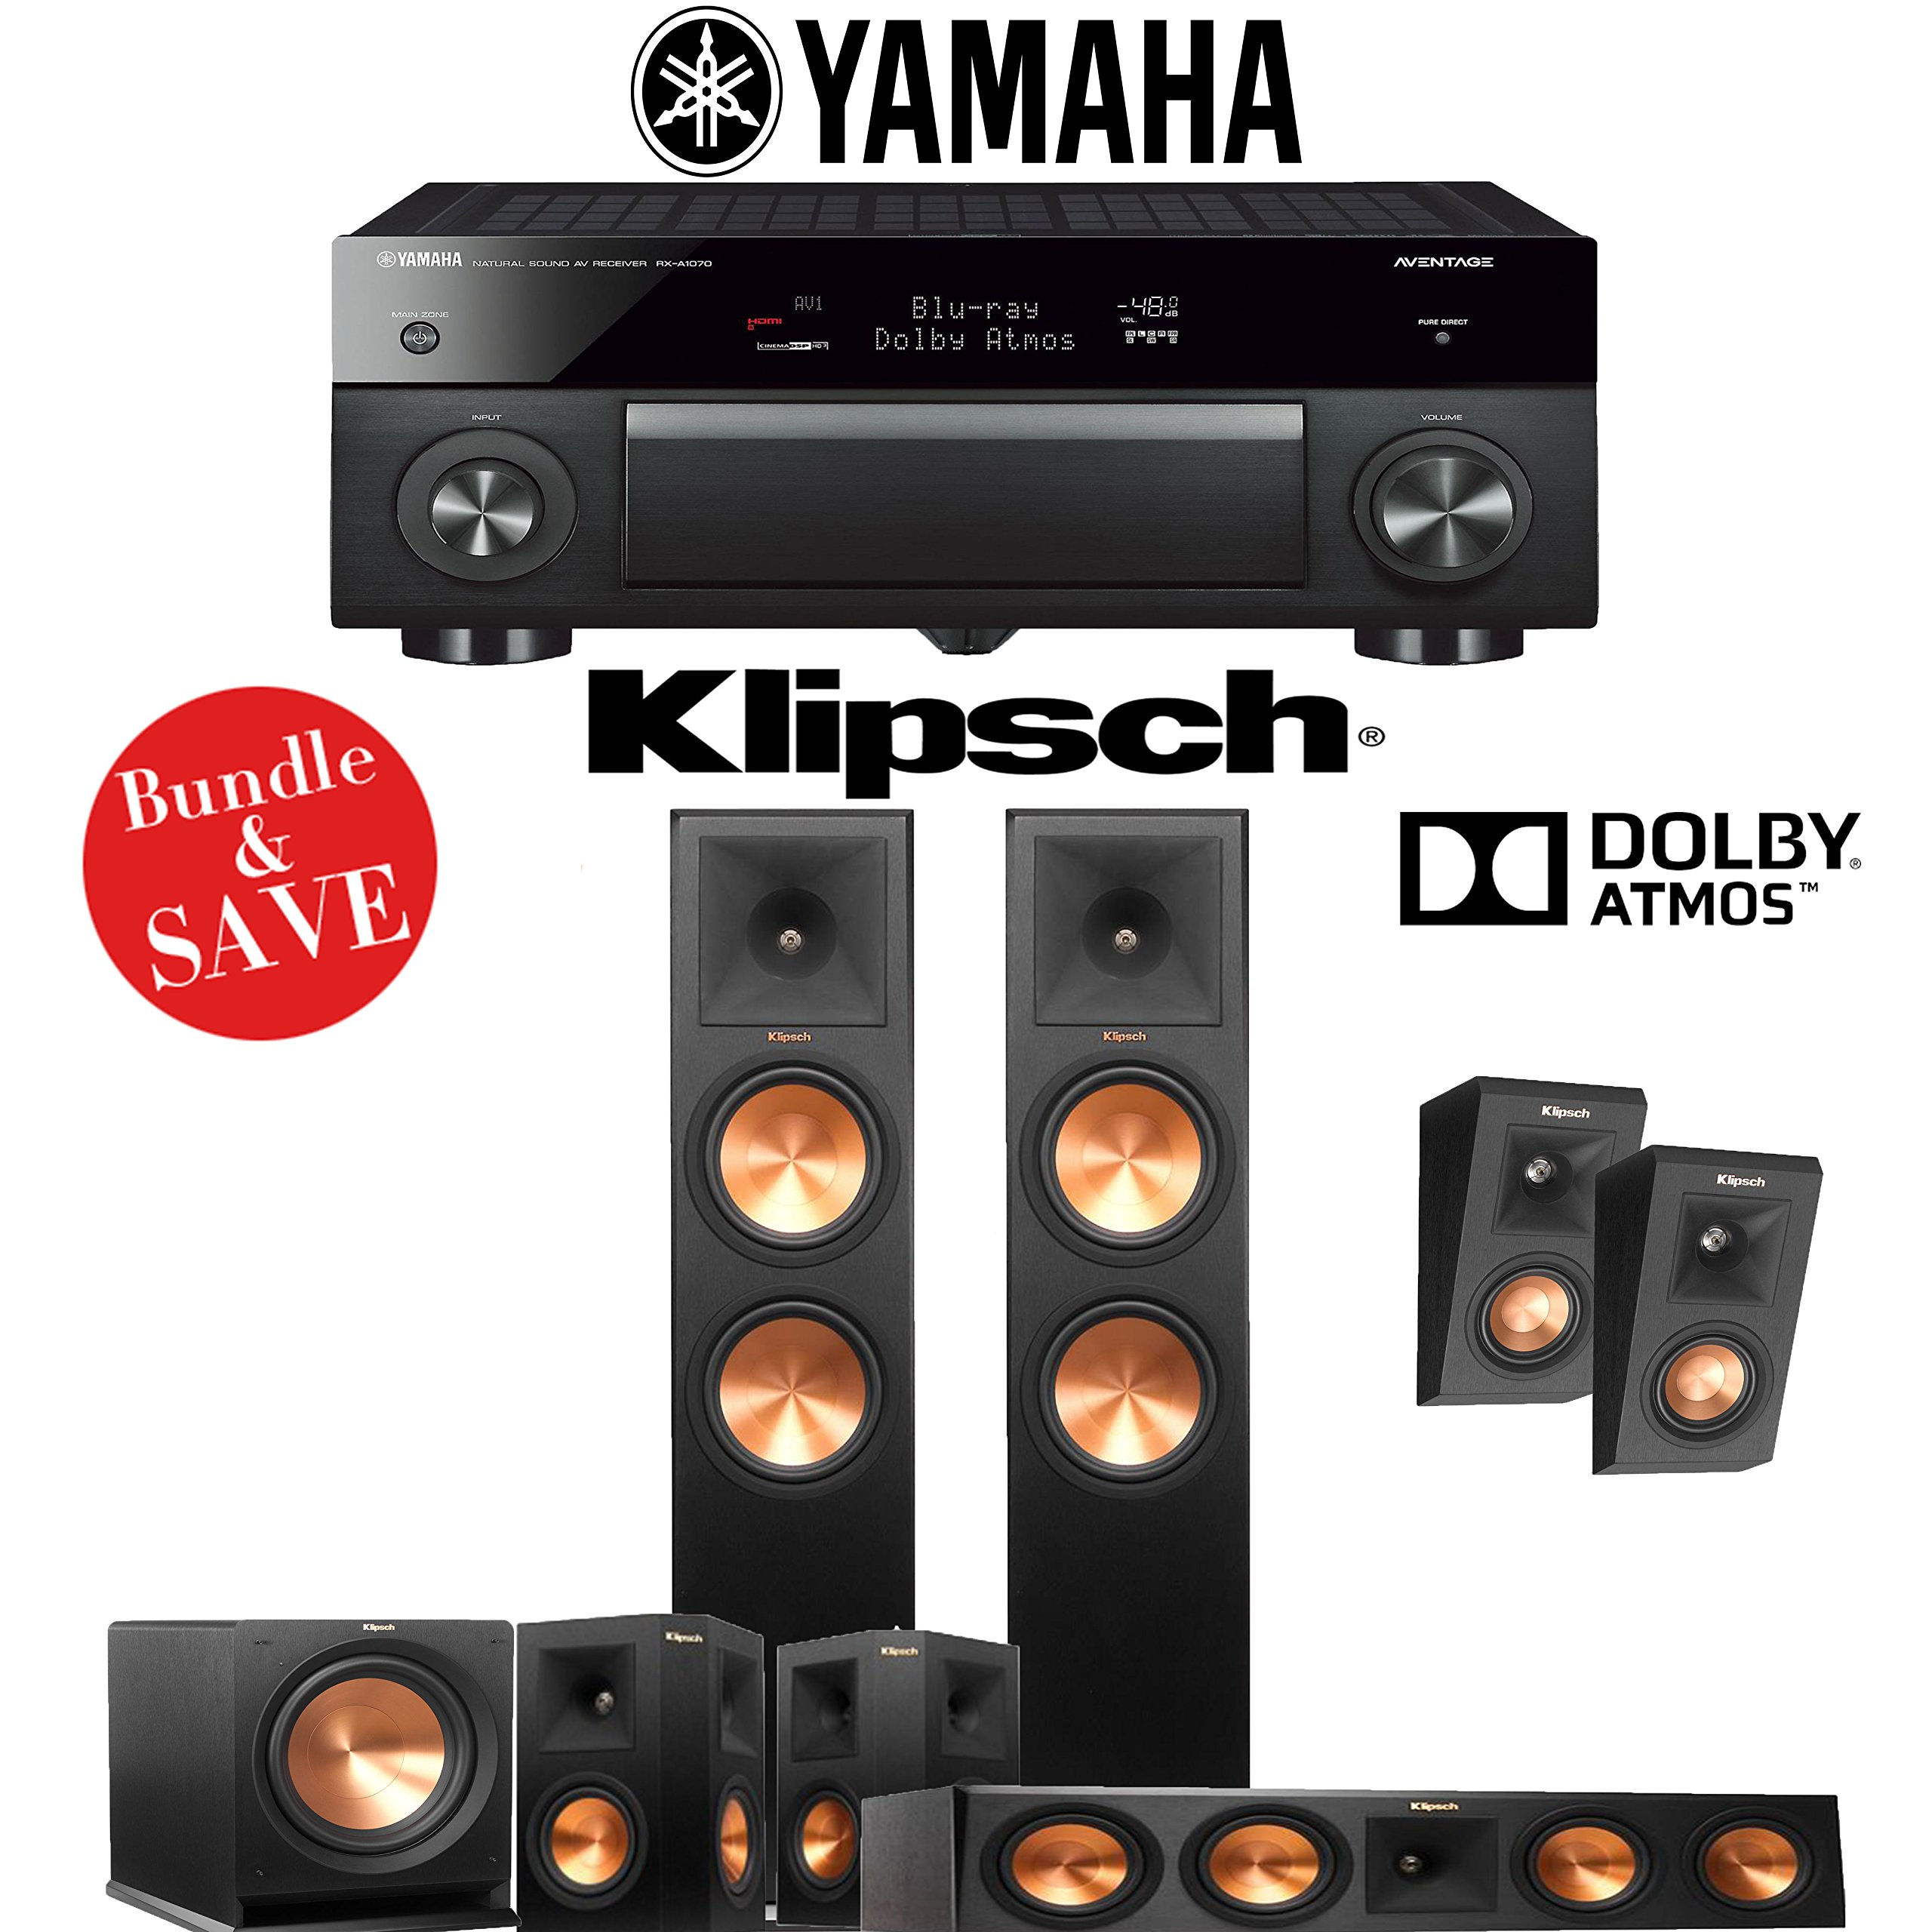 Klipsch RP-280F 5.1.2 Reference Premiere Dolby Atmos Home Theater System with Yamaha AVENTAGE RX-A1070BL 7.2-Channel Network AV Receiver by Klipsch